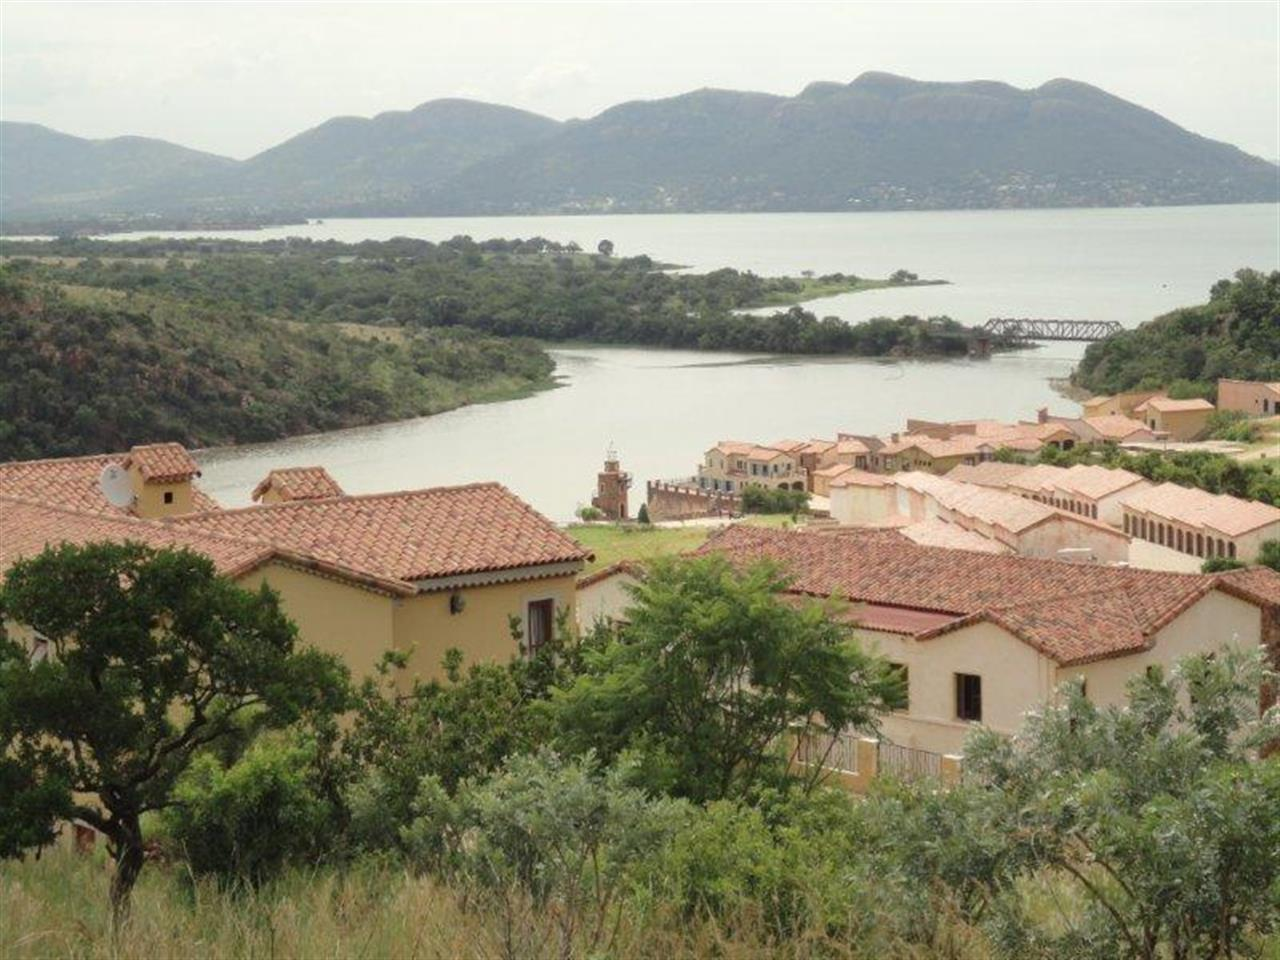 Views from Estate d' Afrique, Hartbeespoort Dam, South Africa